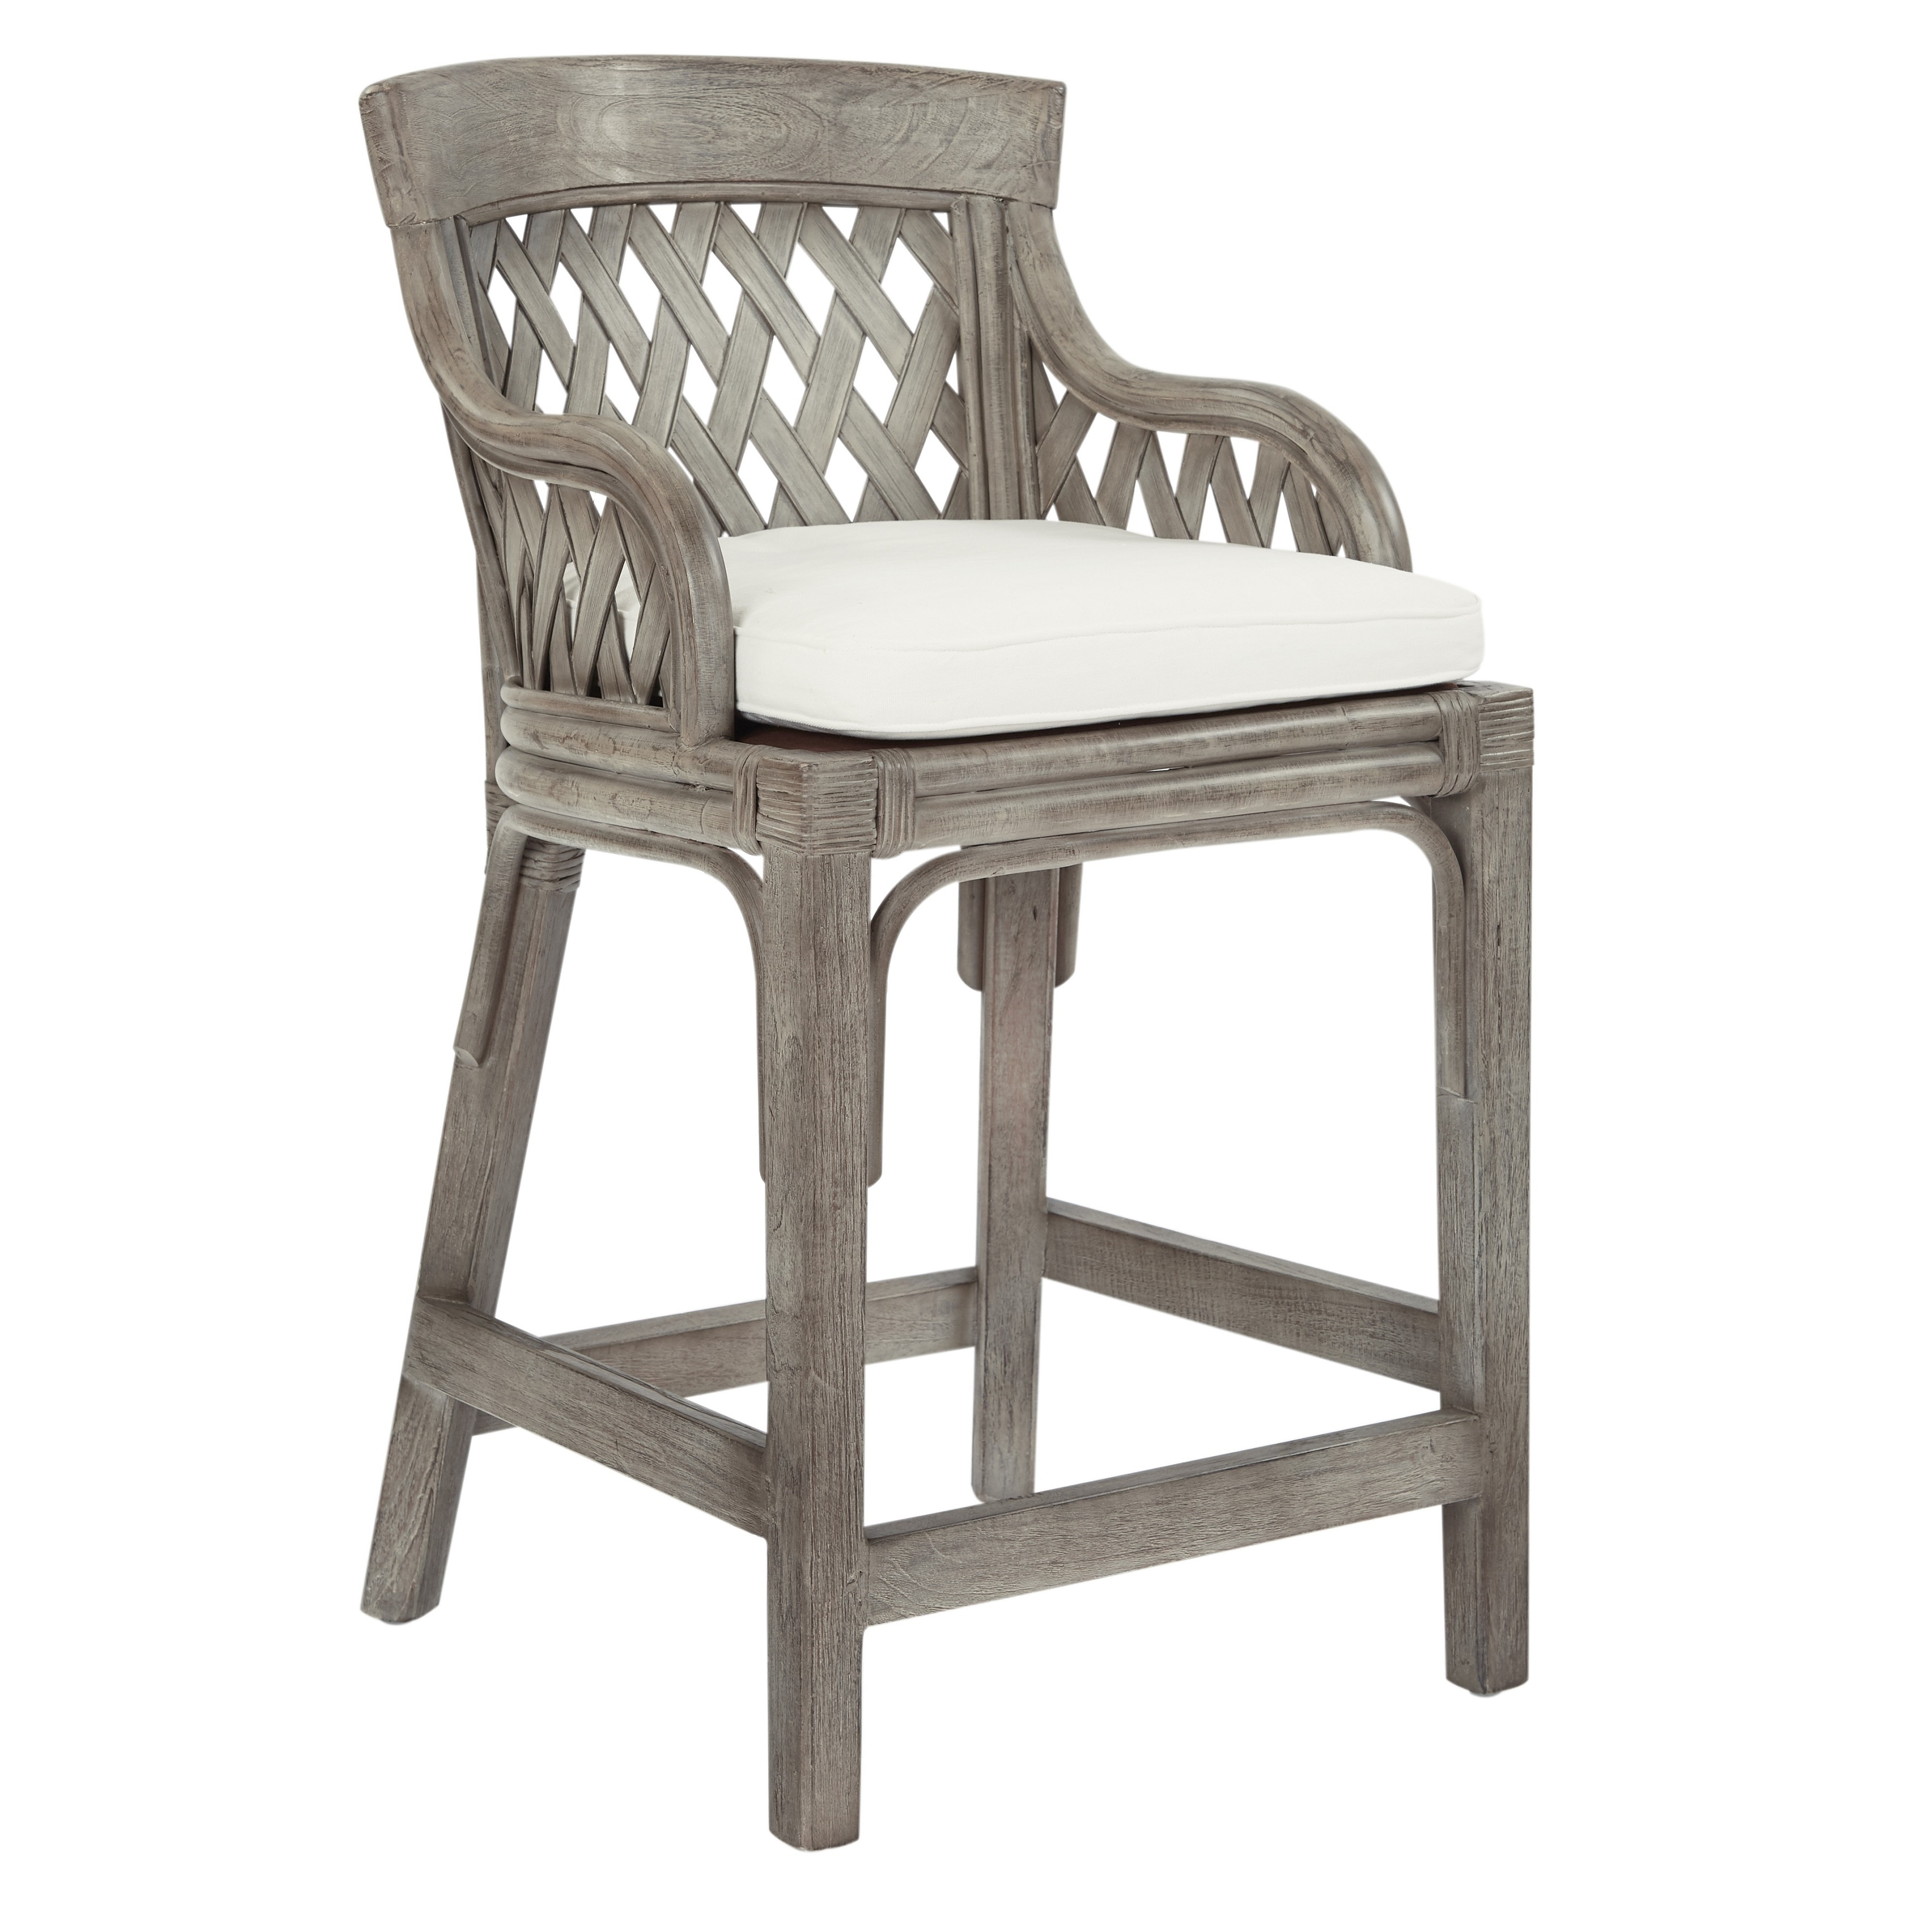 Enjoyable Osp Home Furnishings Plantation 24 Inch Counter Stool With Woven Back Panels Caraccident5 Cool Chair Designs And Ideas Caraccident5Info